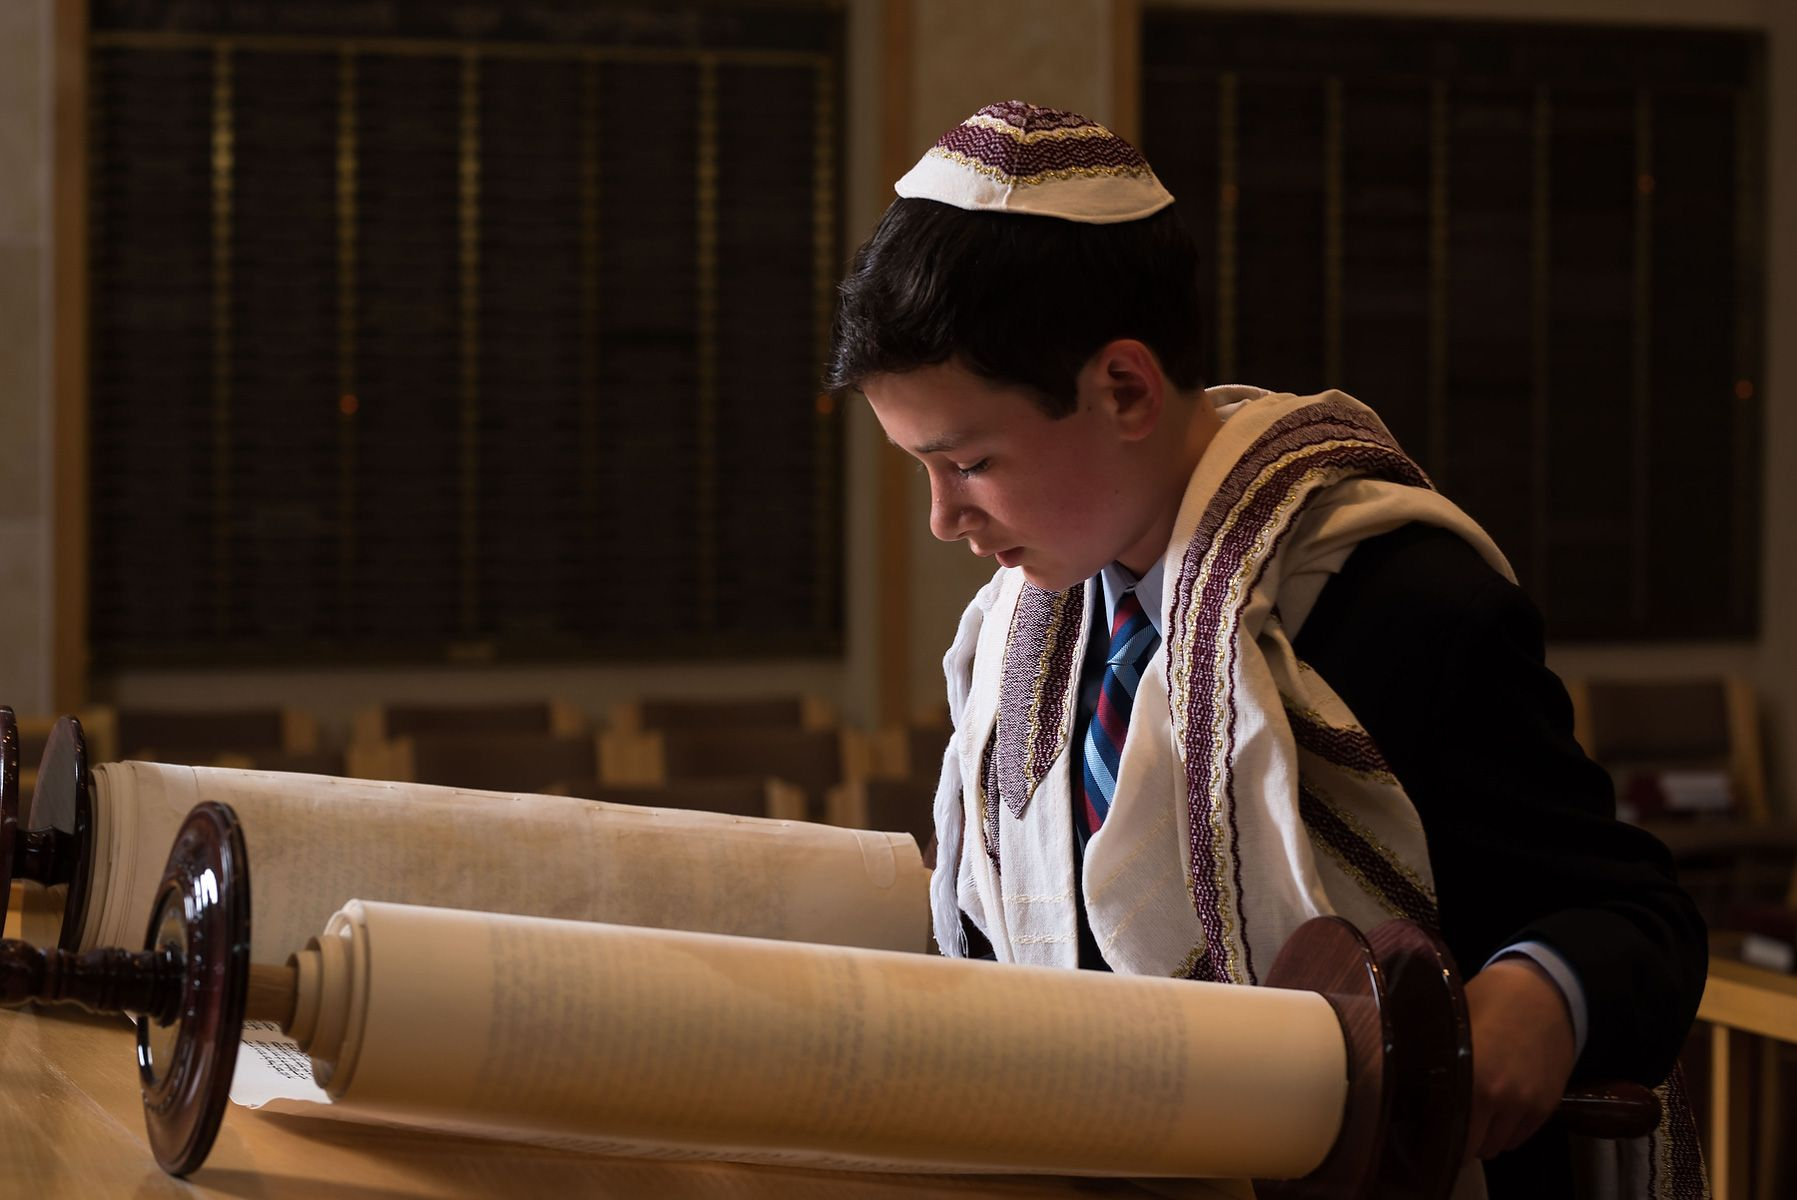 Mt. Kisco Torah reading